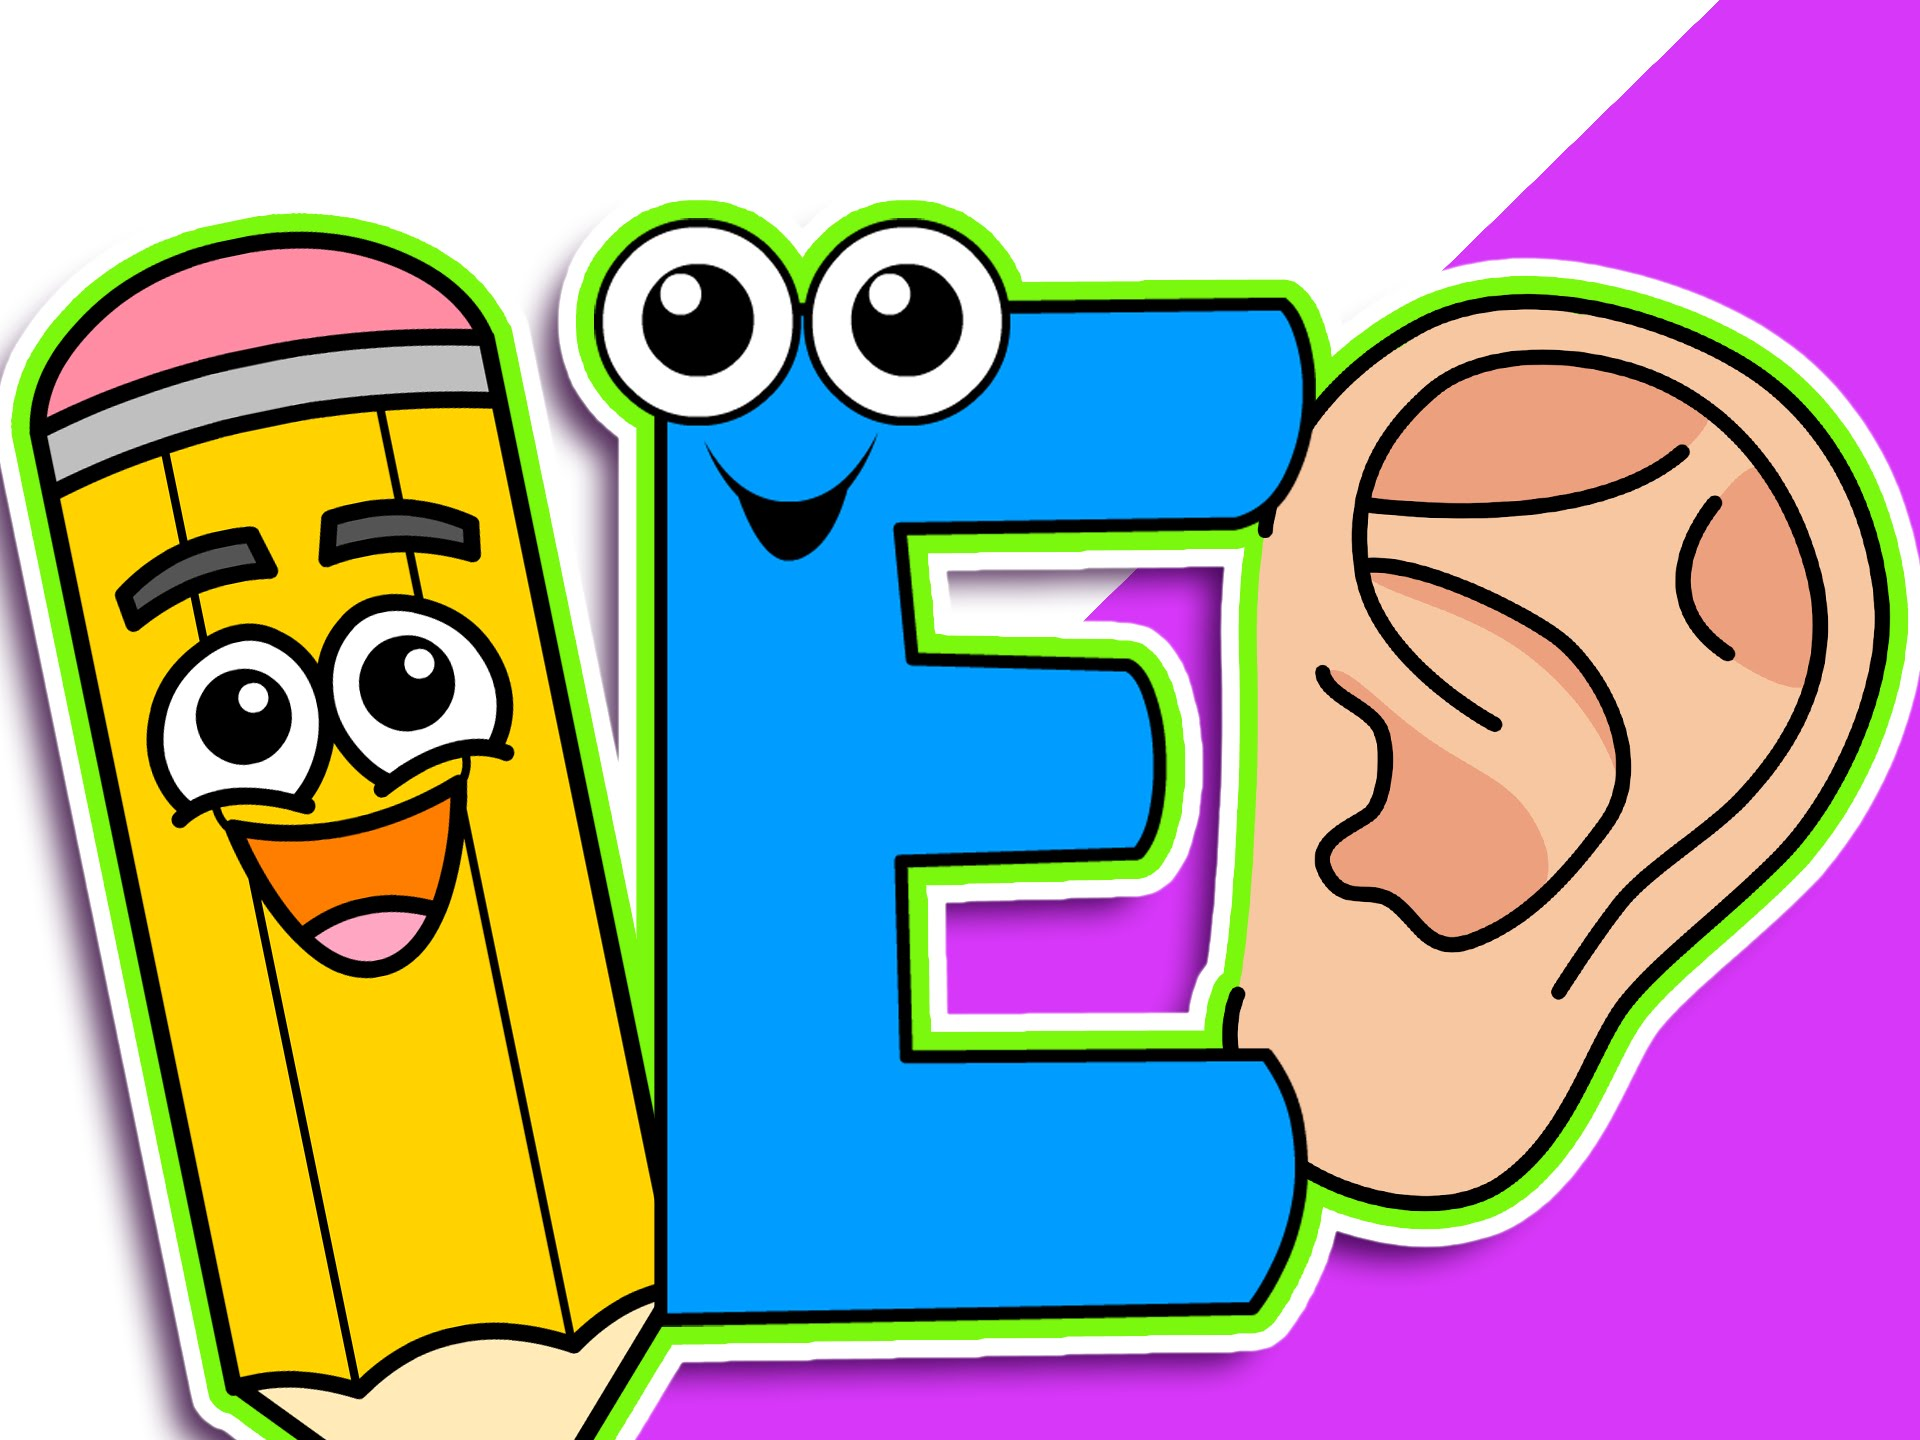 Letter E Clipart At Getdrawings